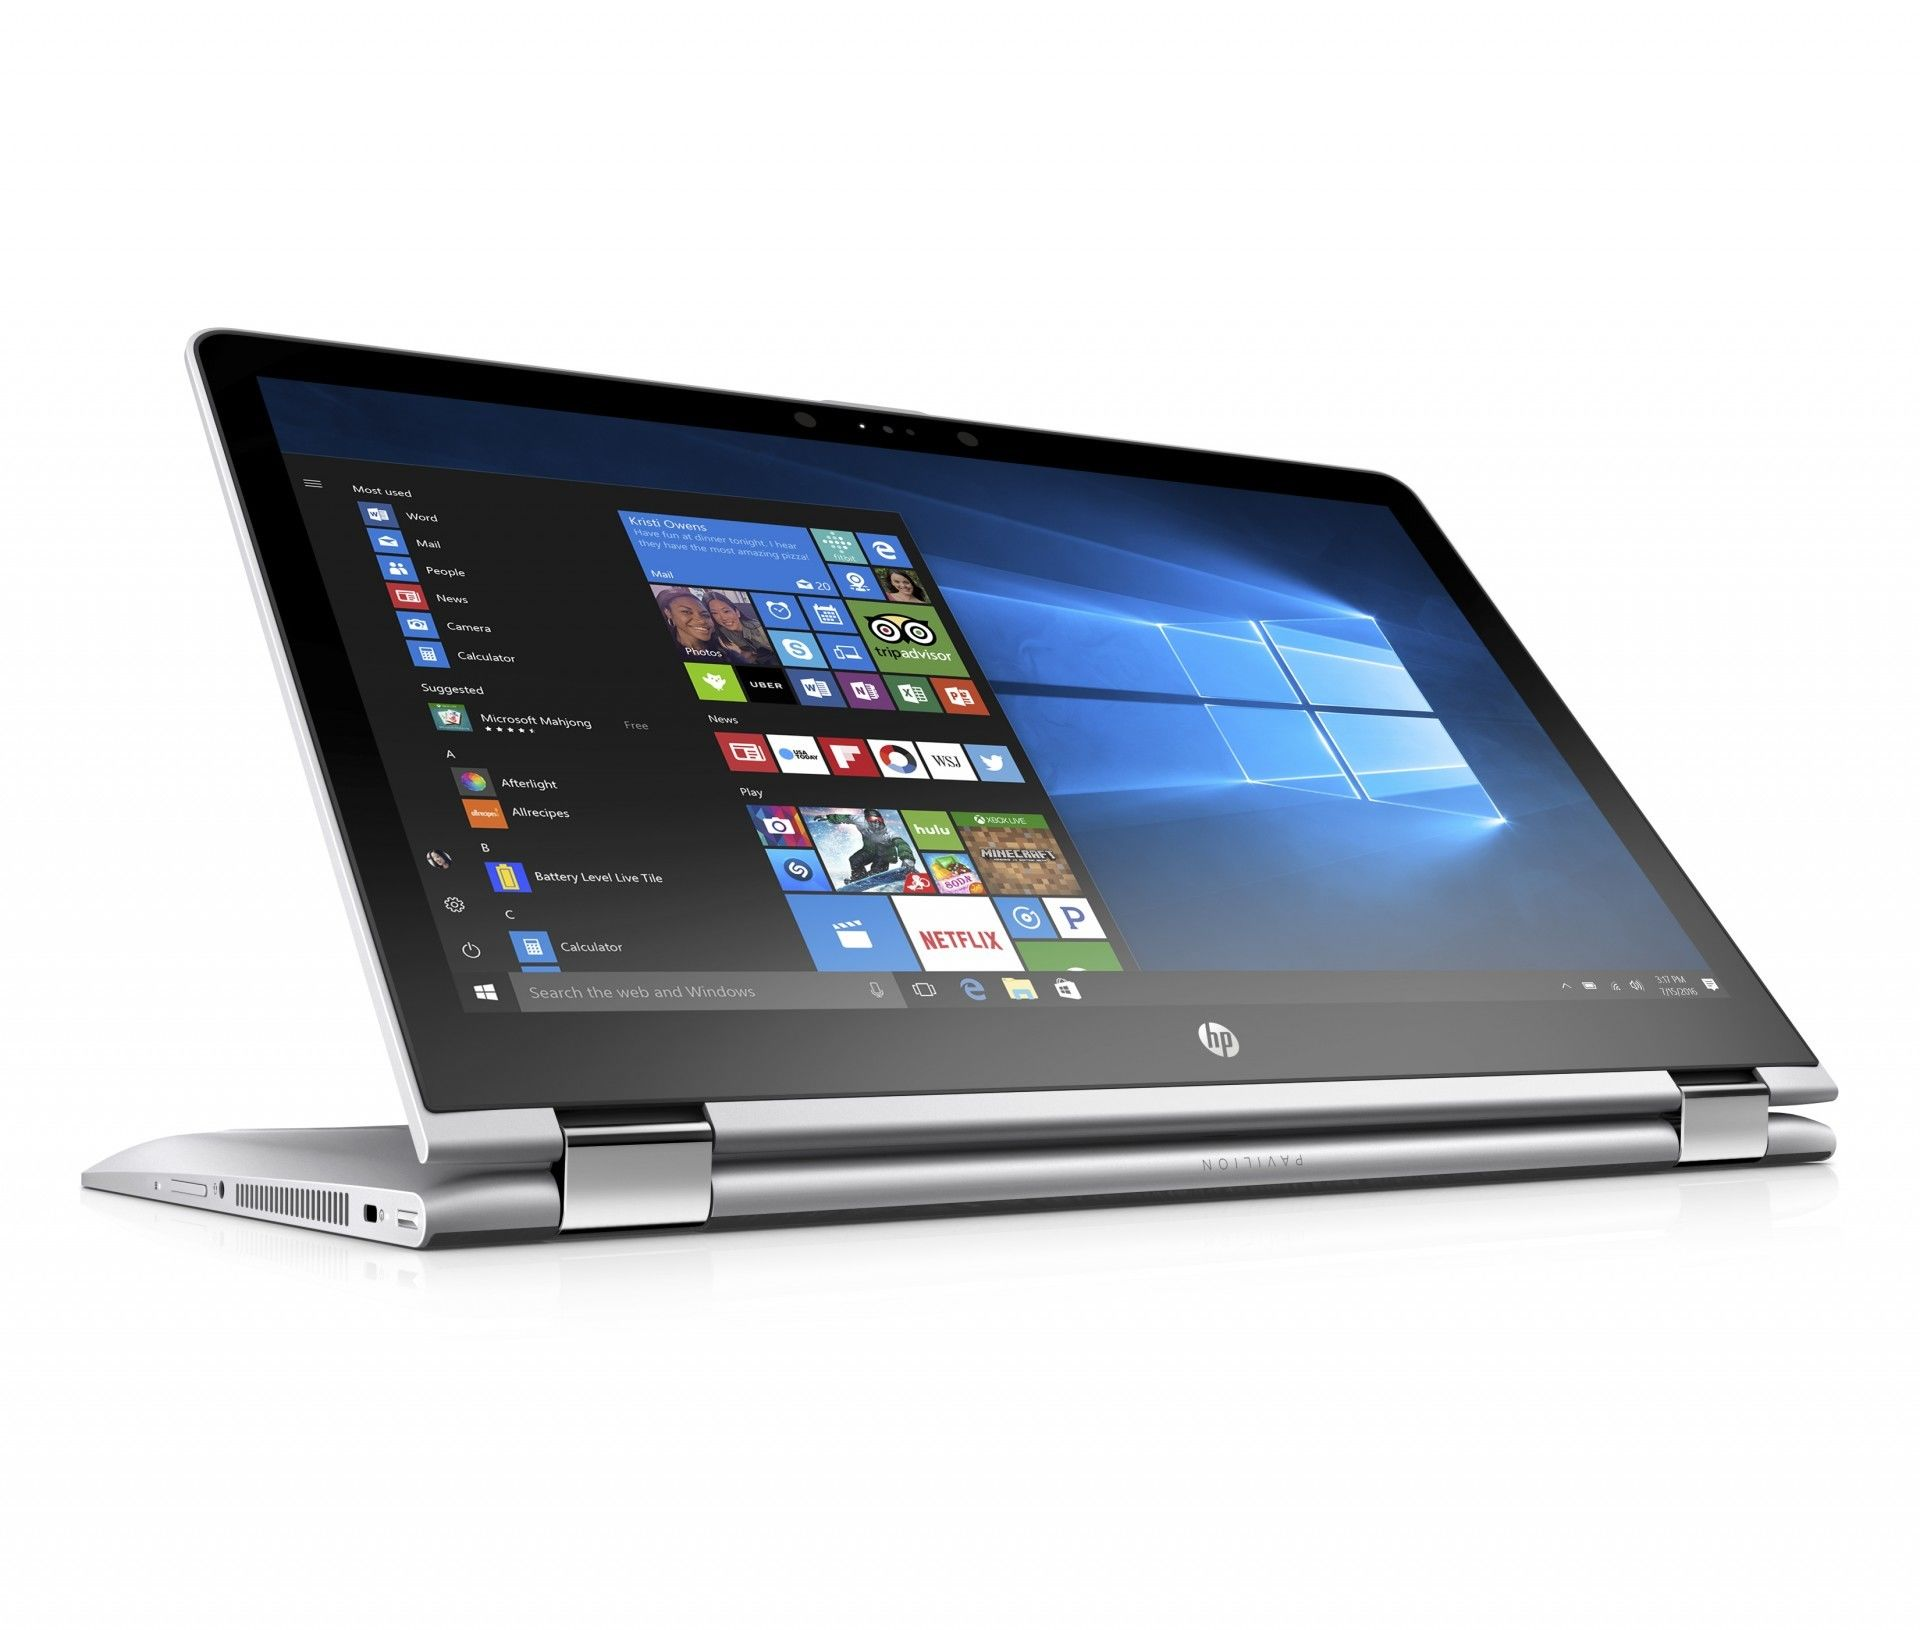 HP Pavilion x360 15-br005nw 2HP45EAR